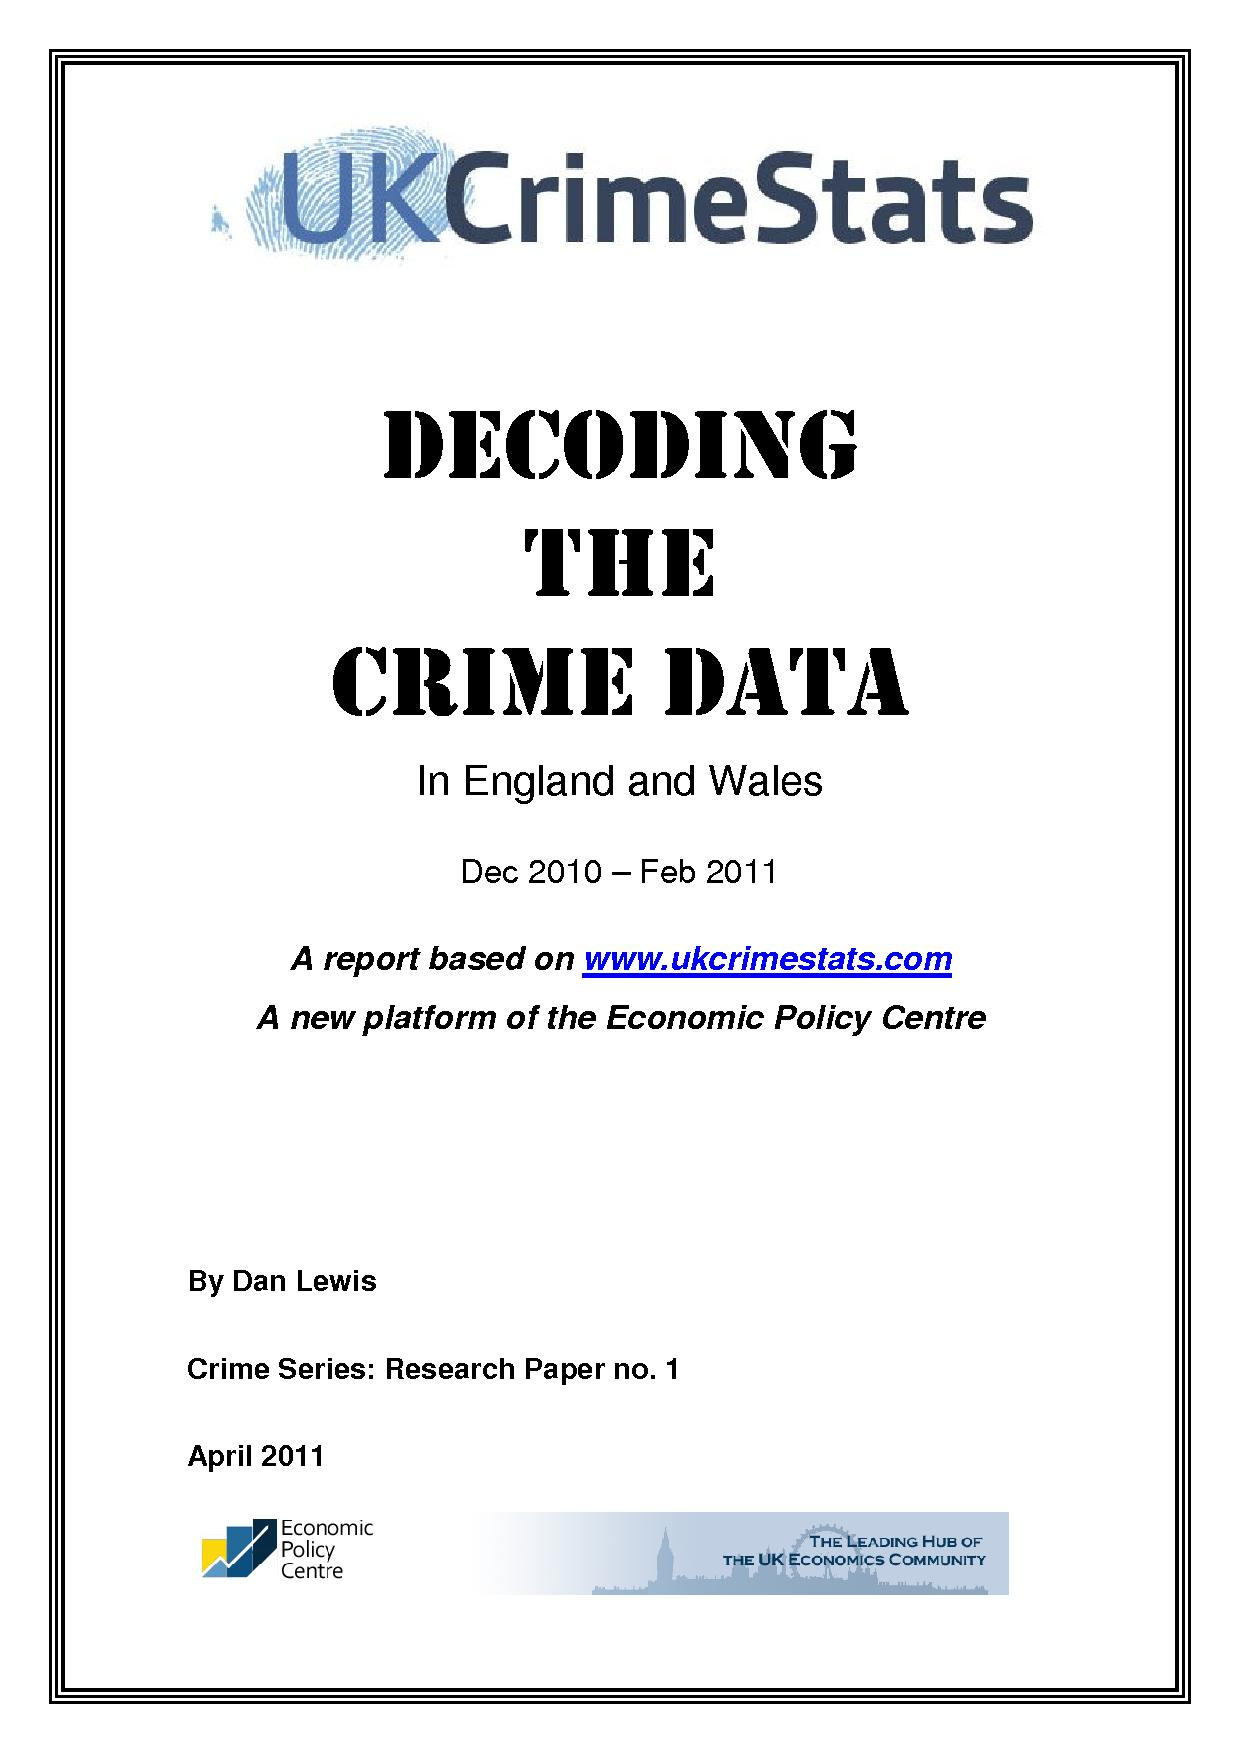 Decoding the Crime Data: Dec 2010 - Feb 2011